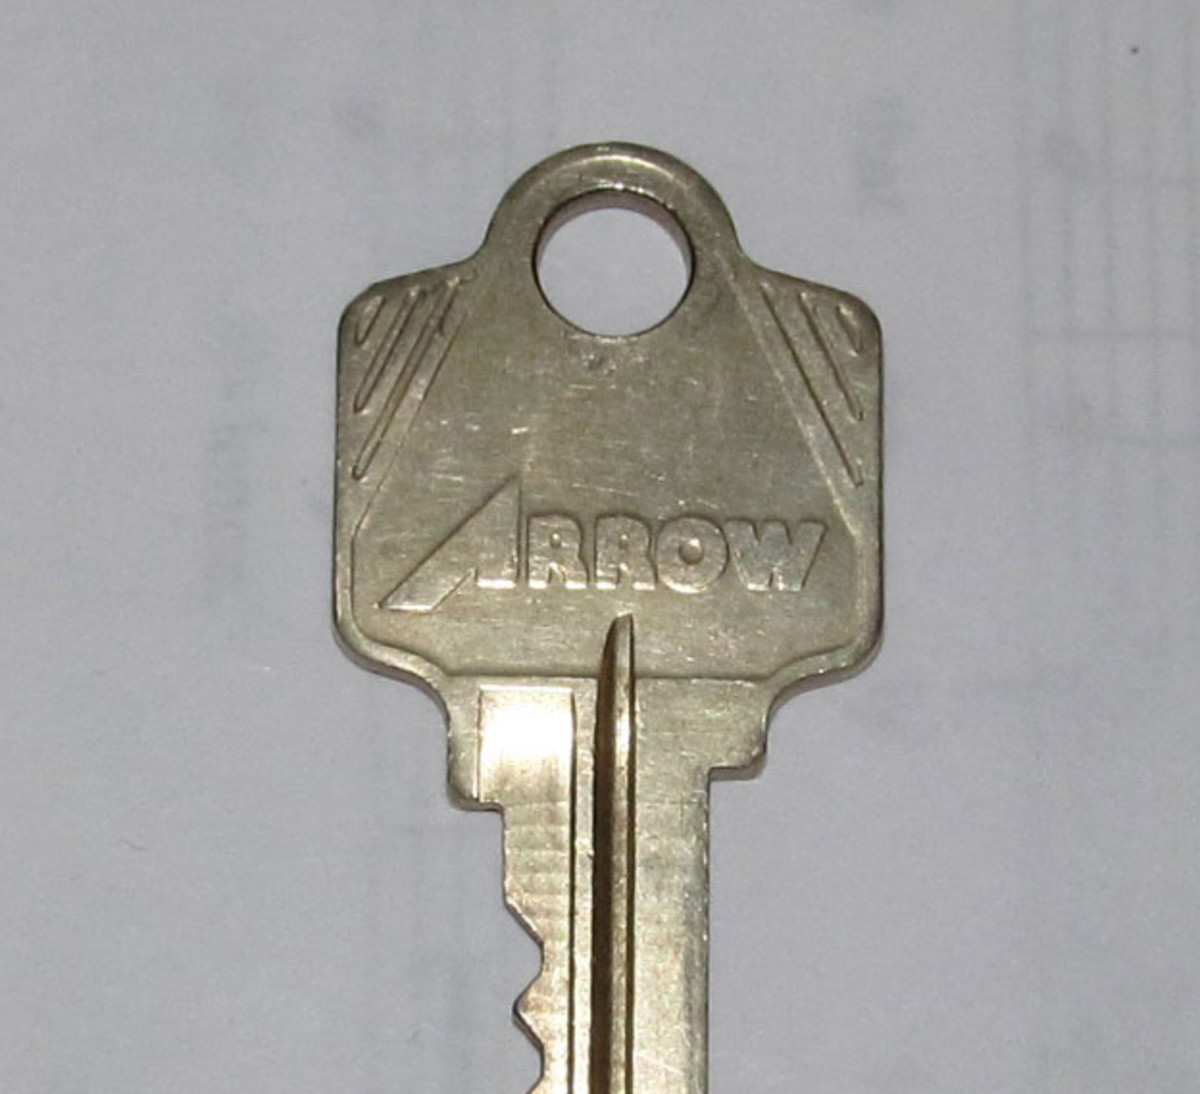 Figure 6a - An Arrow Lock Company Original Key Blank